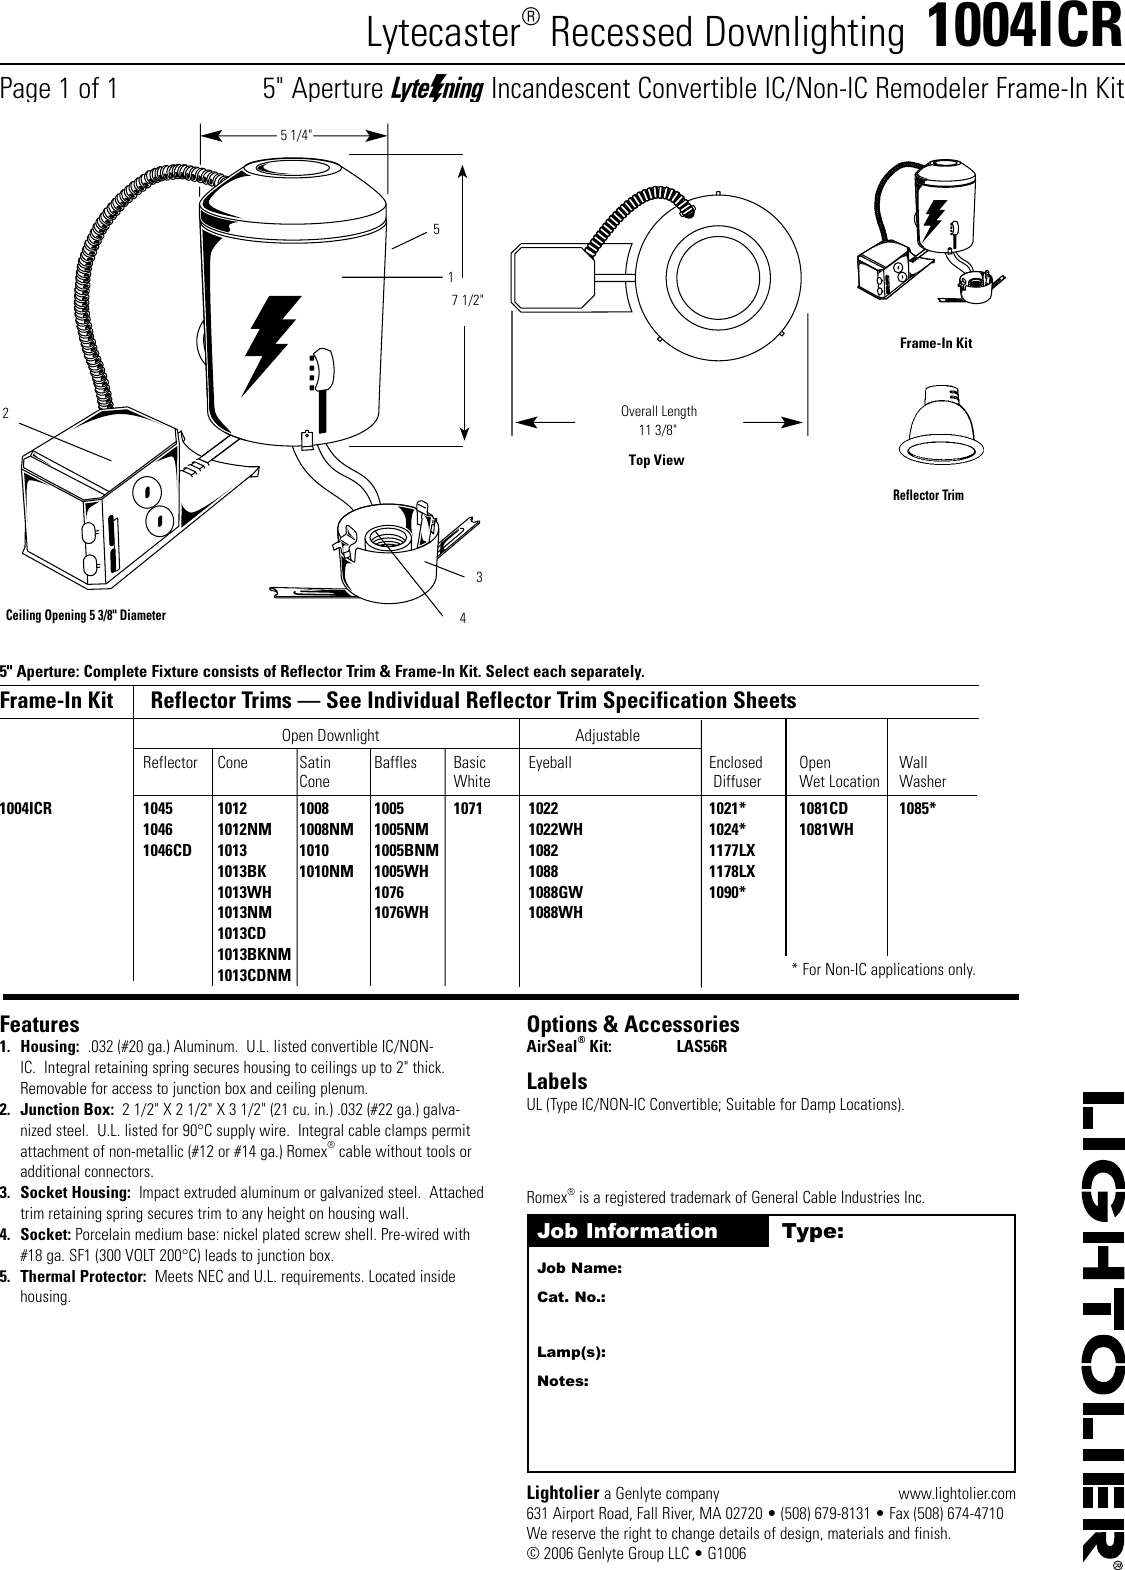 Lightolier Lytecaster 1004icr Users Manual Wiring Diagram